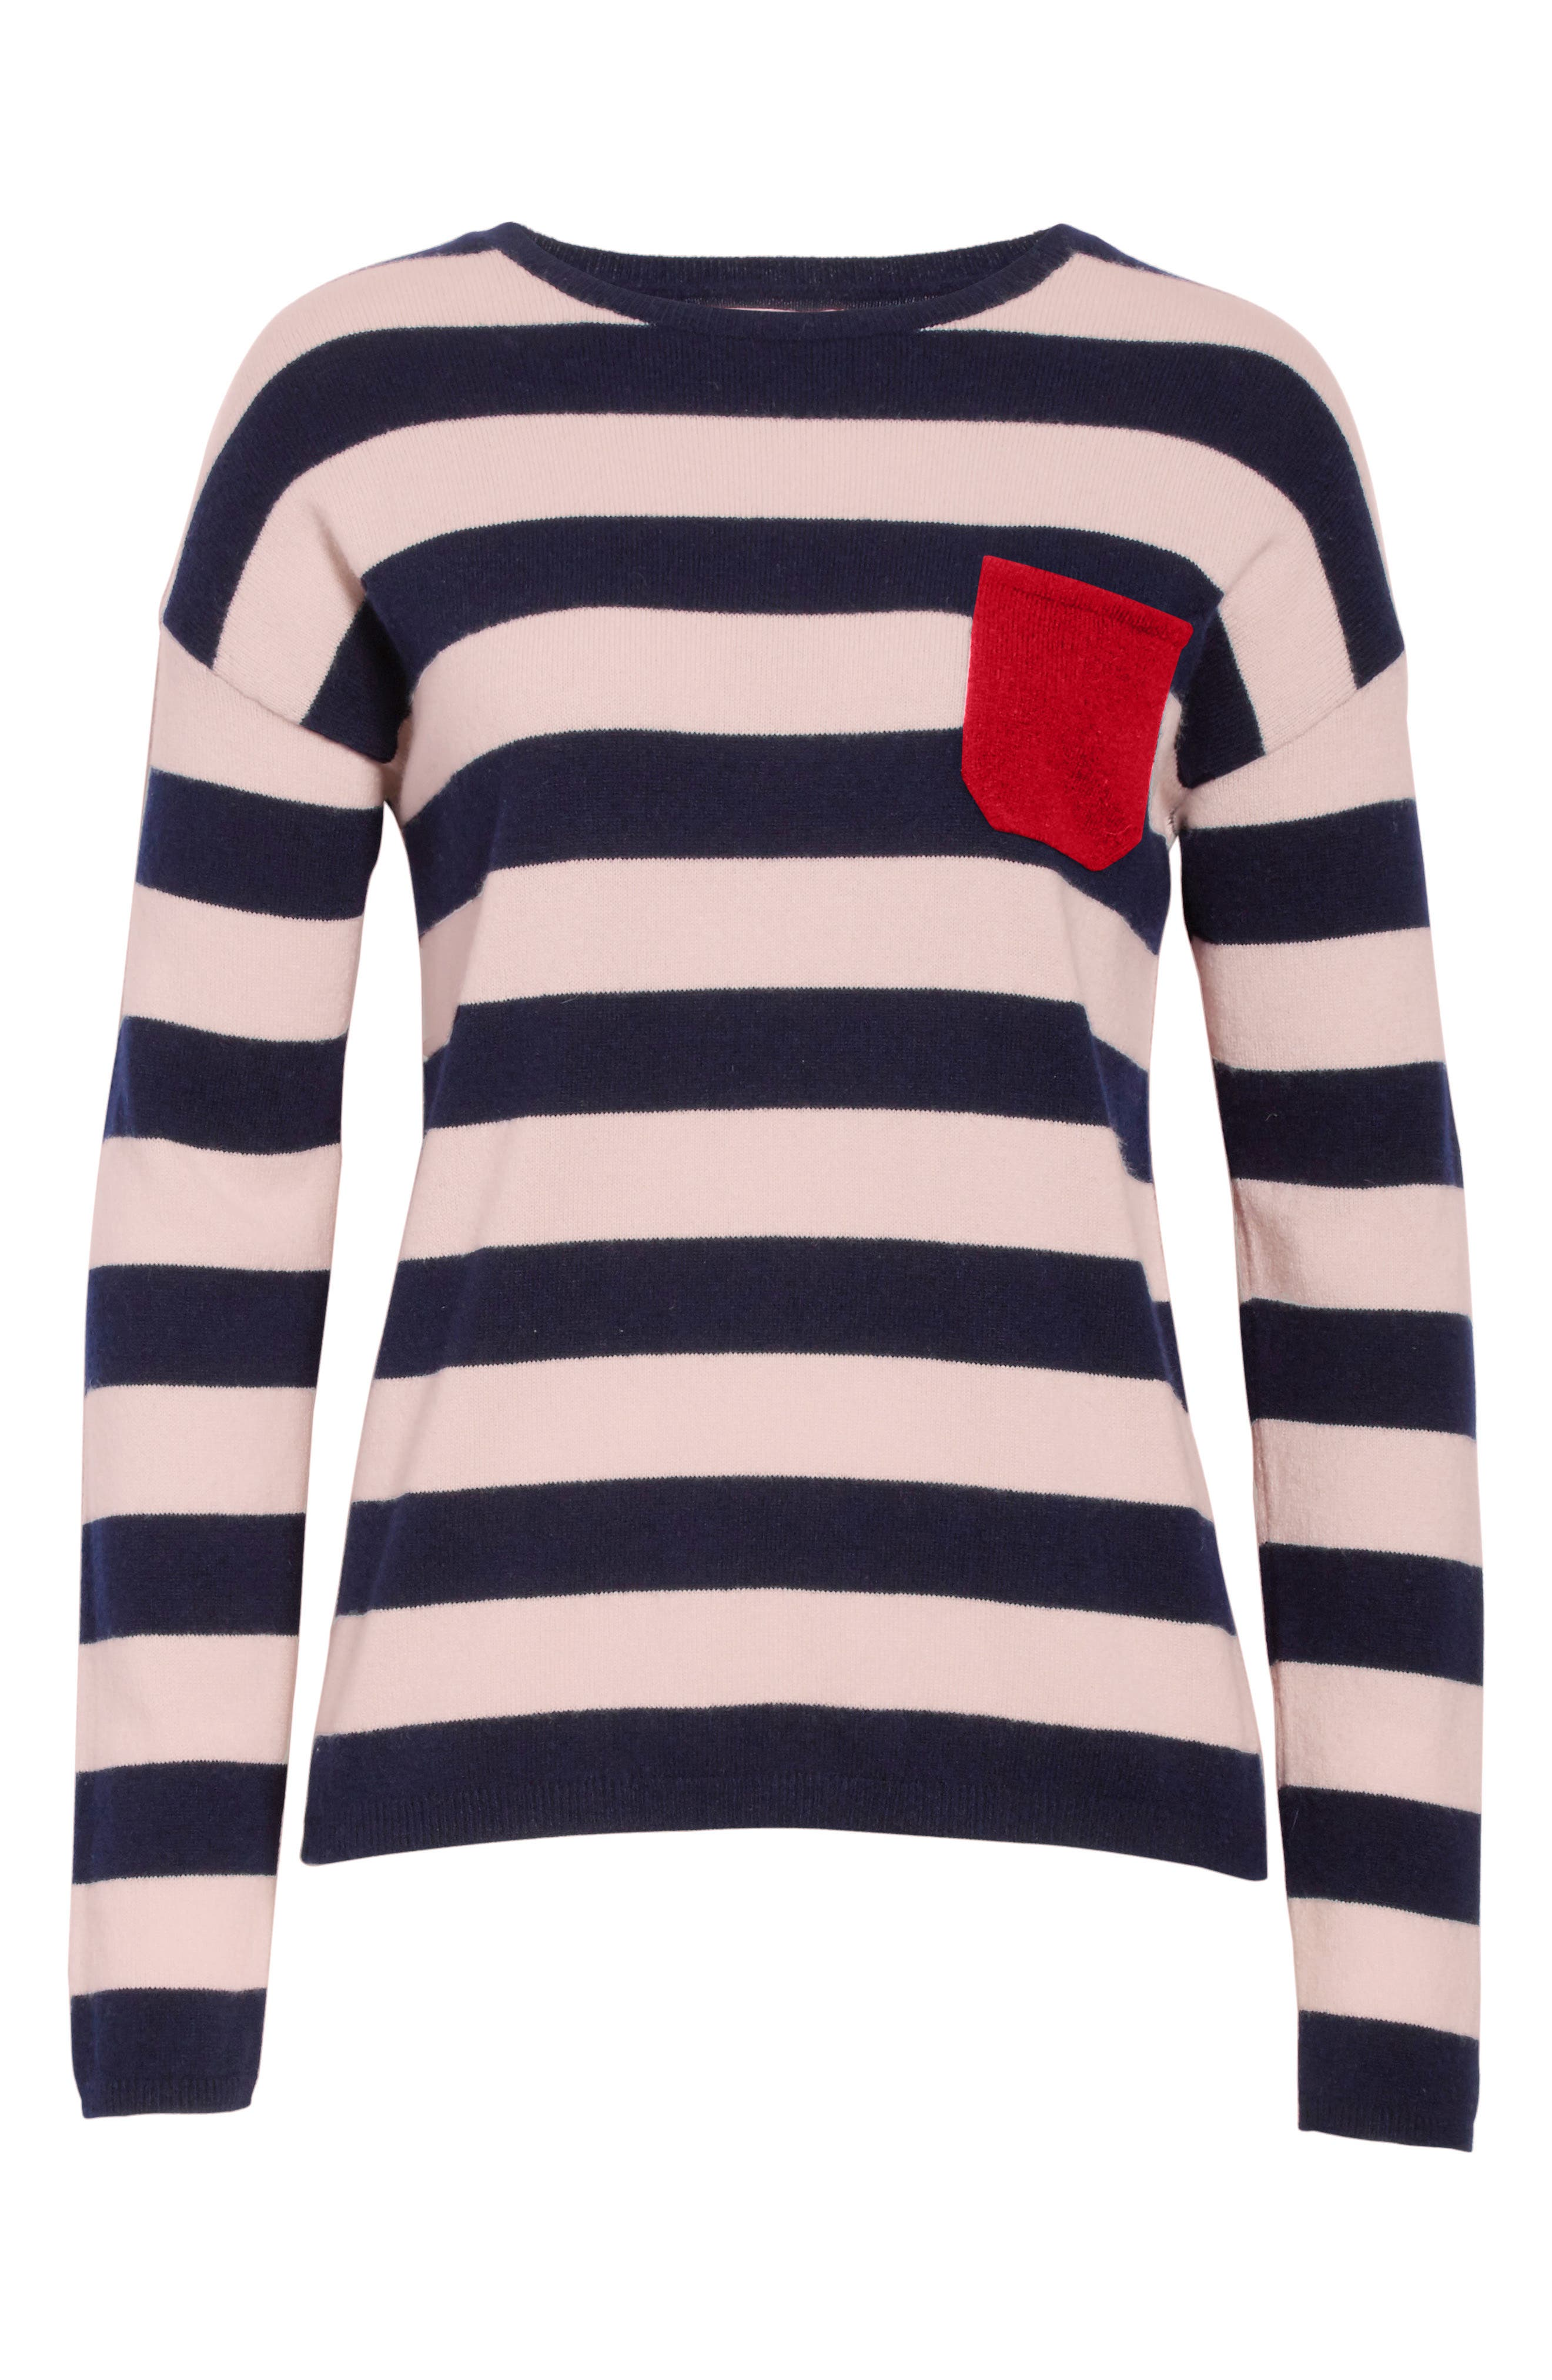 CHINTI & PARKER Navy Pop Stripe Cashmere Sweater,                             Alternate thumbnail 6, color,                             680